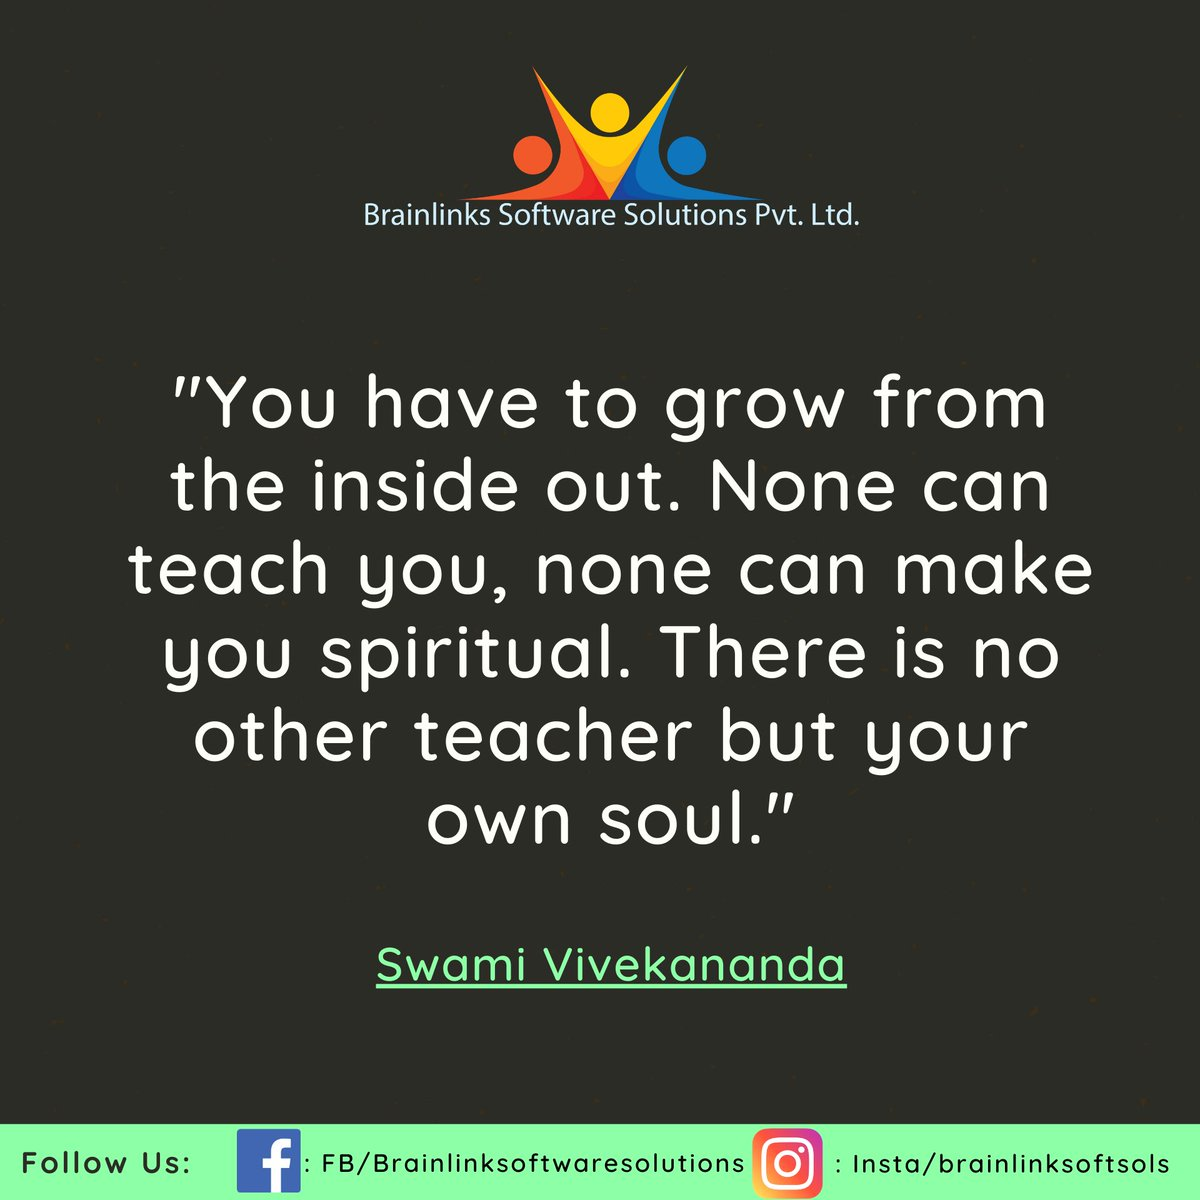 """You have to grow from the inside out. None can teach you, none can make you spiritual. There is no other teacher but your own soul."" - Swami Vivekananda  #MondayMorning #MondayMotivation #MondayThoughts #life #motivation #success #startup #quotepic.twitter.com/Qn5c2qNxEw"